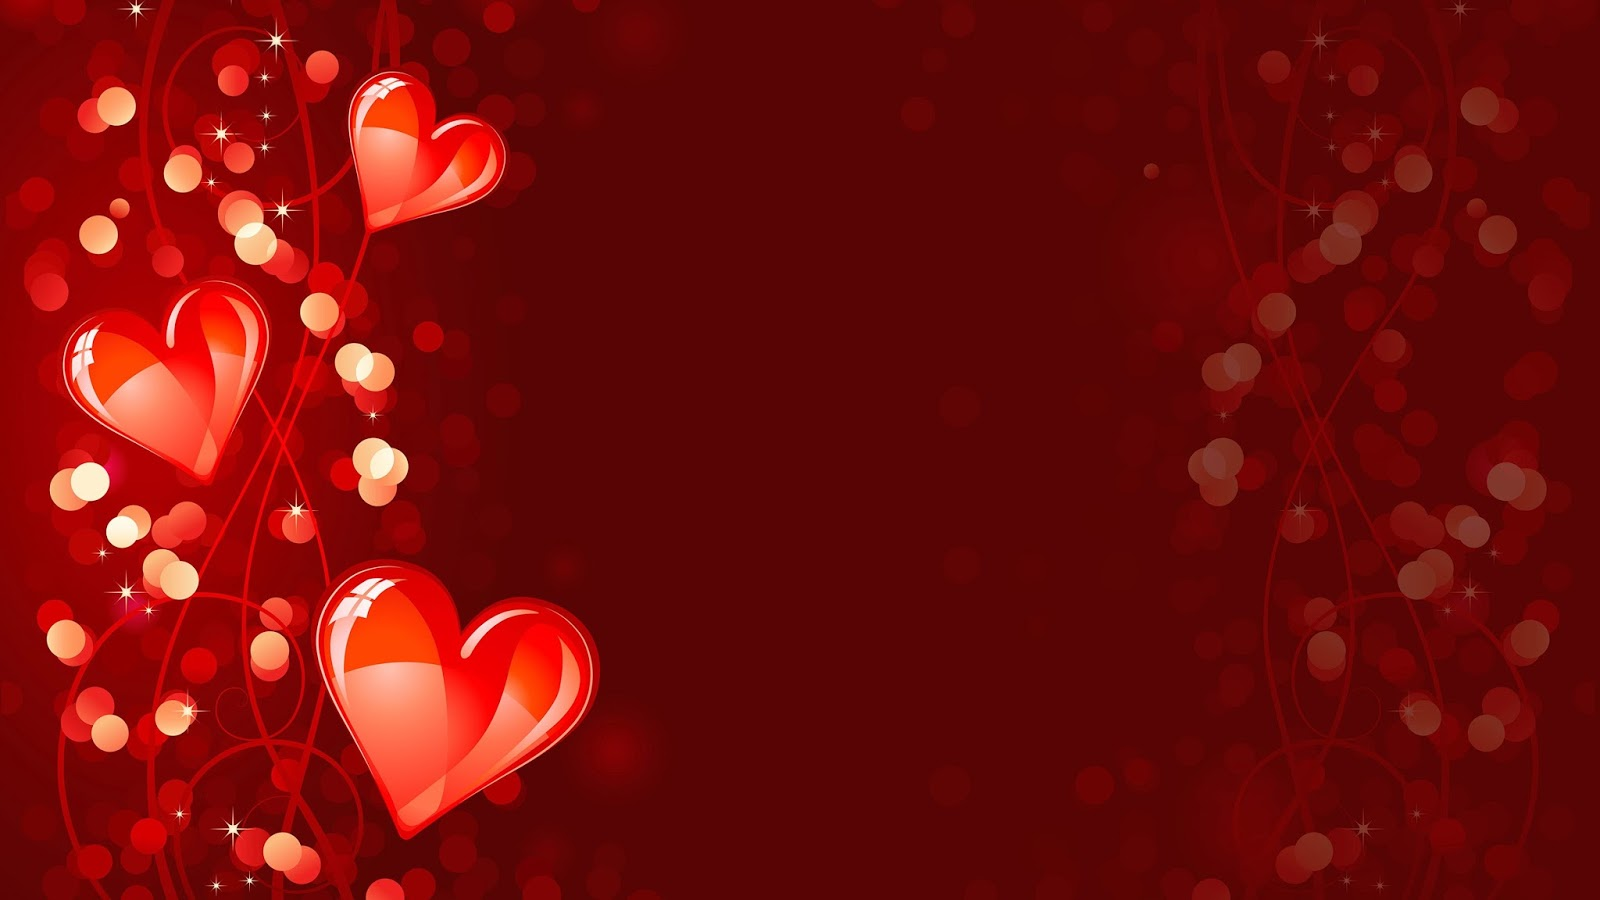 desktop 1080p hd love - photo #1